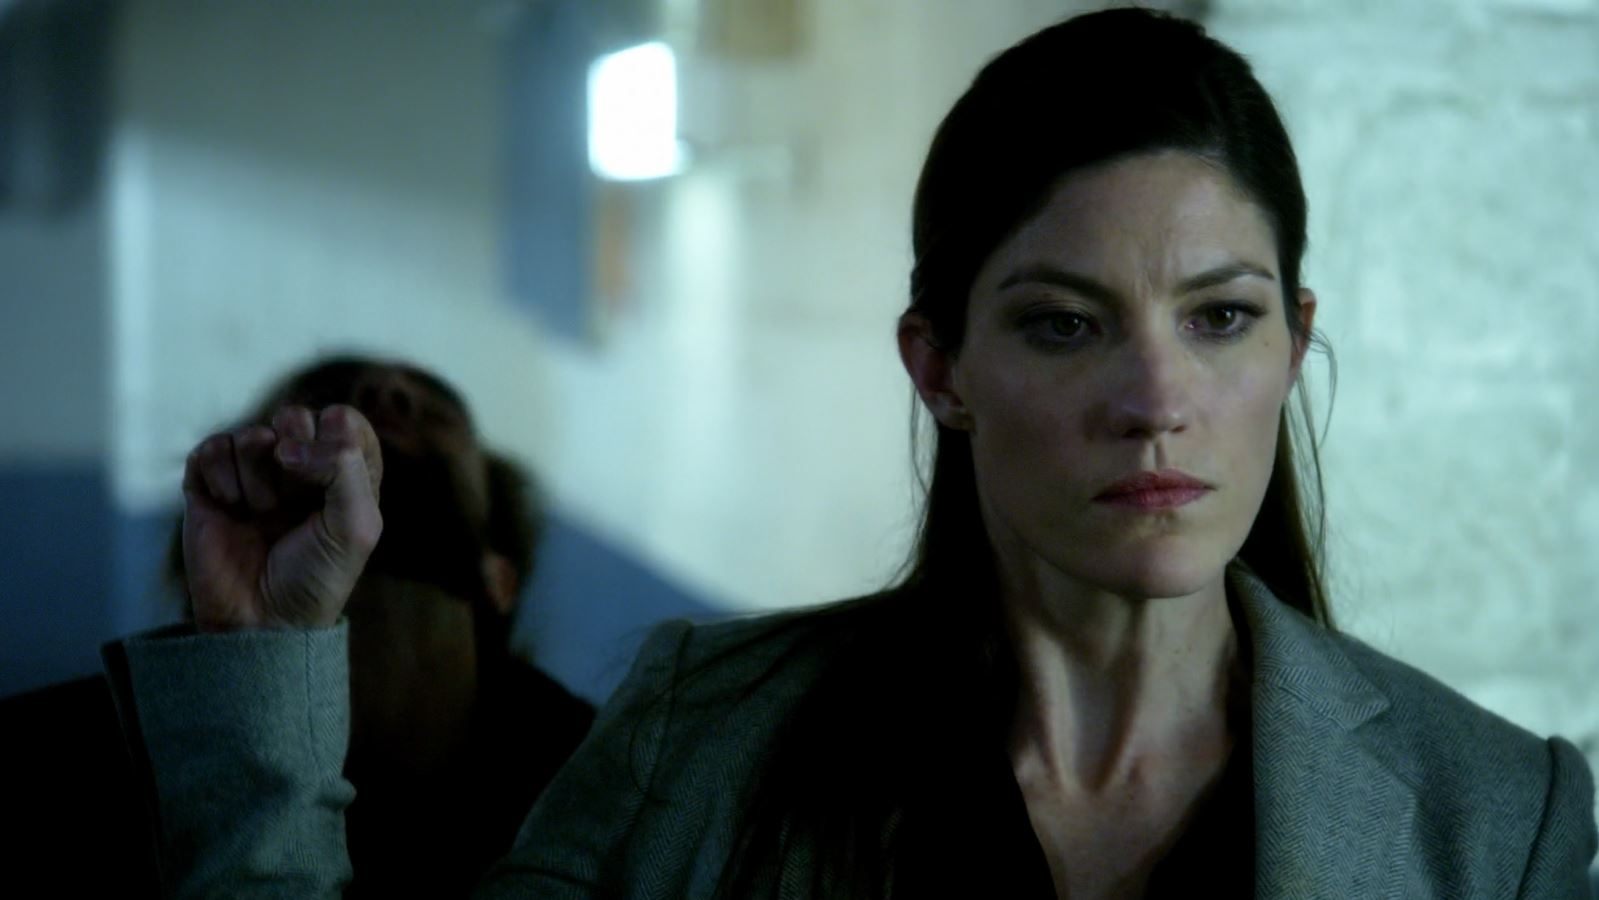 Jennifer Carpenter as Rebecca Harris kicking ass. Limitless.